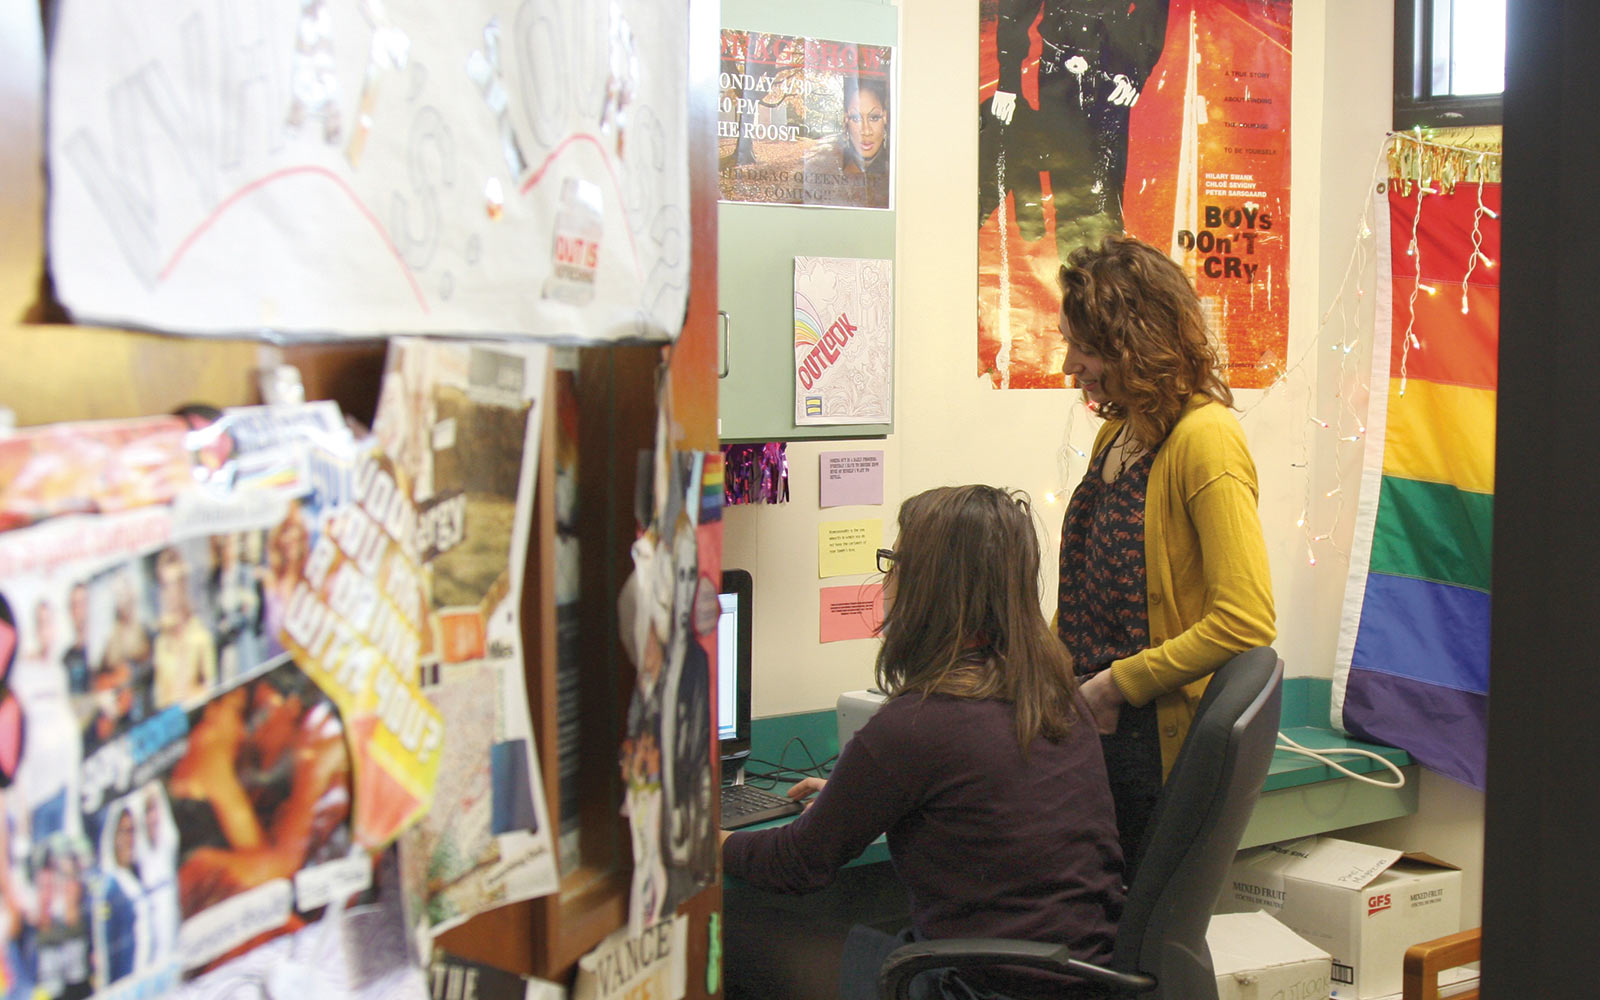 2013 - Caitlyn Battaglia '13 the current vice president of Outlook, and Taylor Klassman '13, the group's president, hang out in the Outlook office in Slayter. The office was given to the organization in 1995 by the Denison Campus Governance…